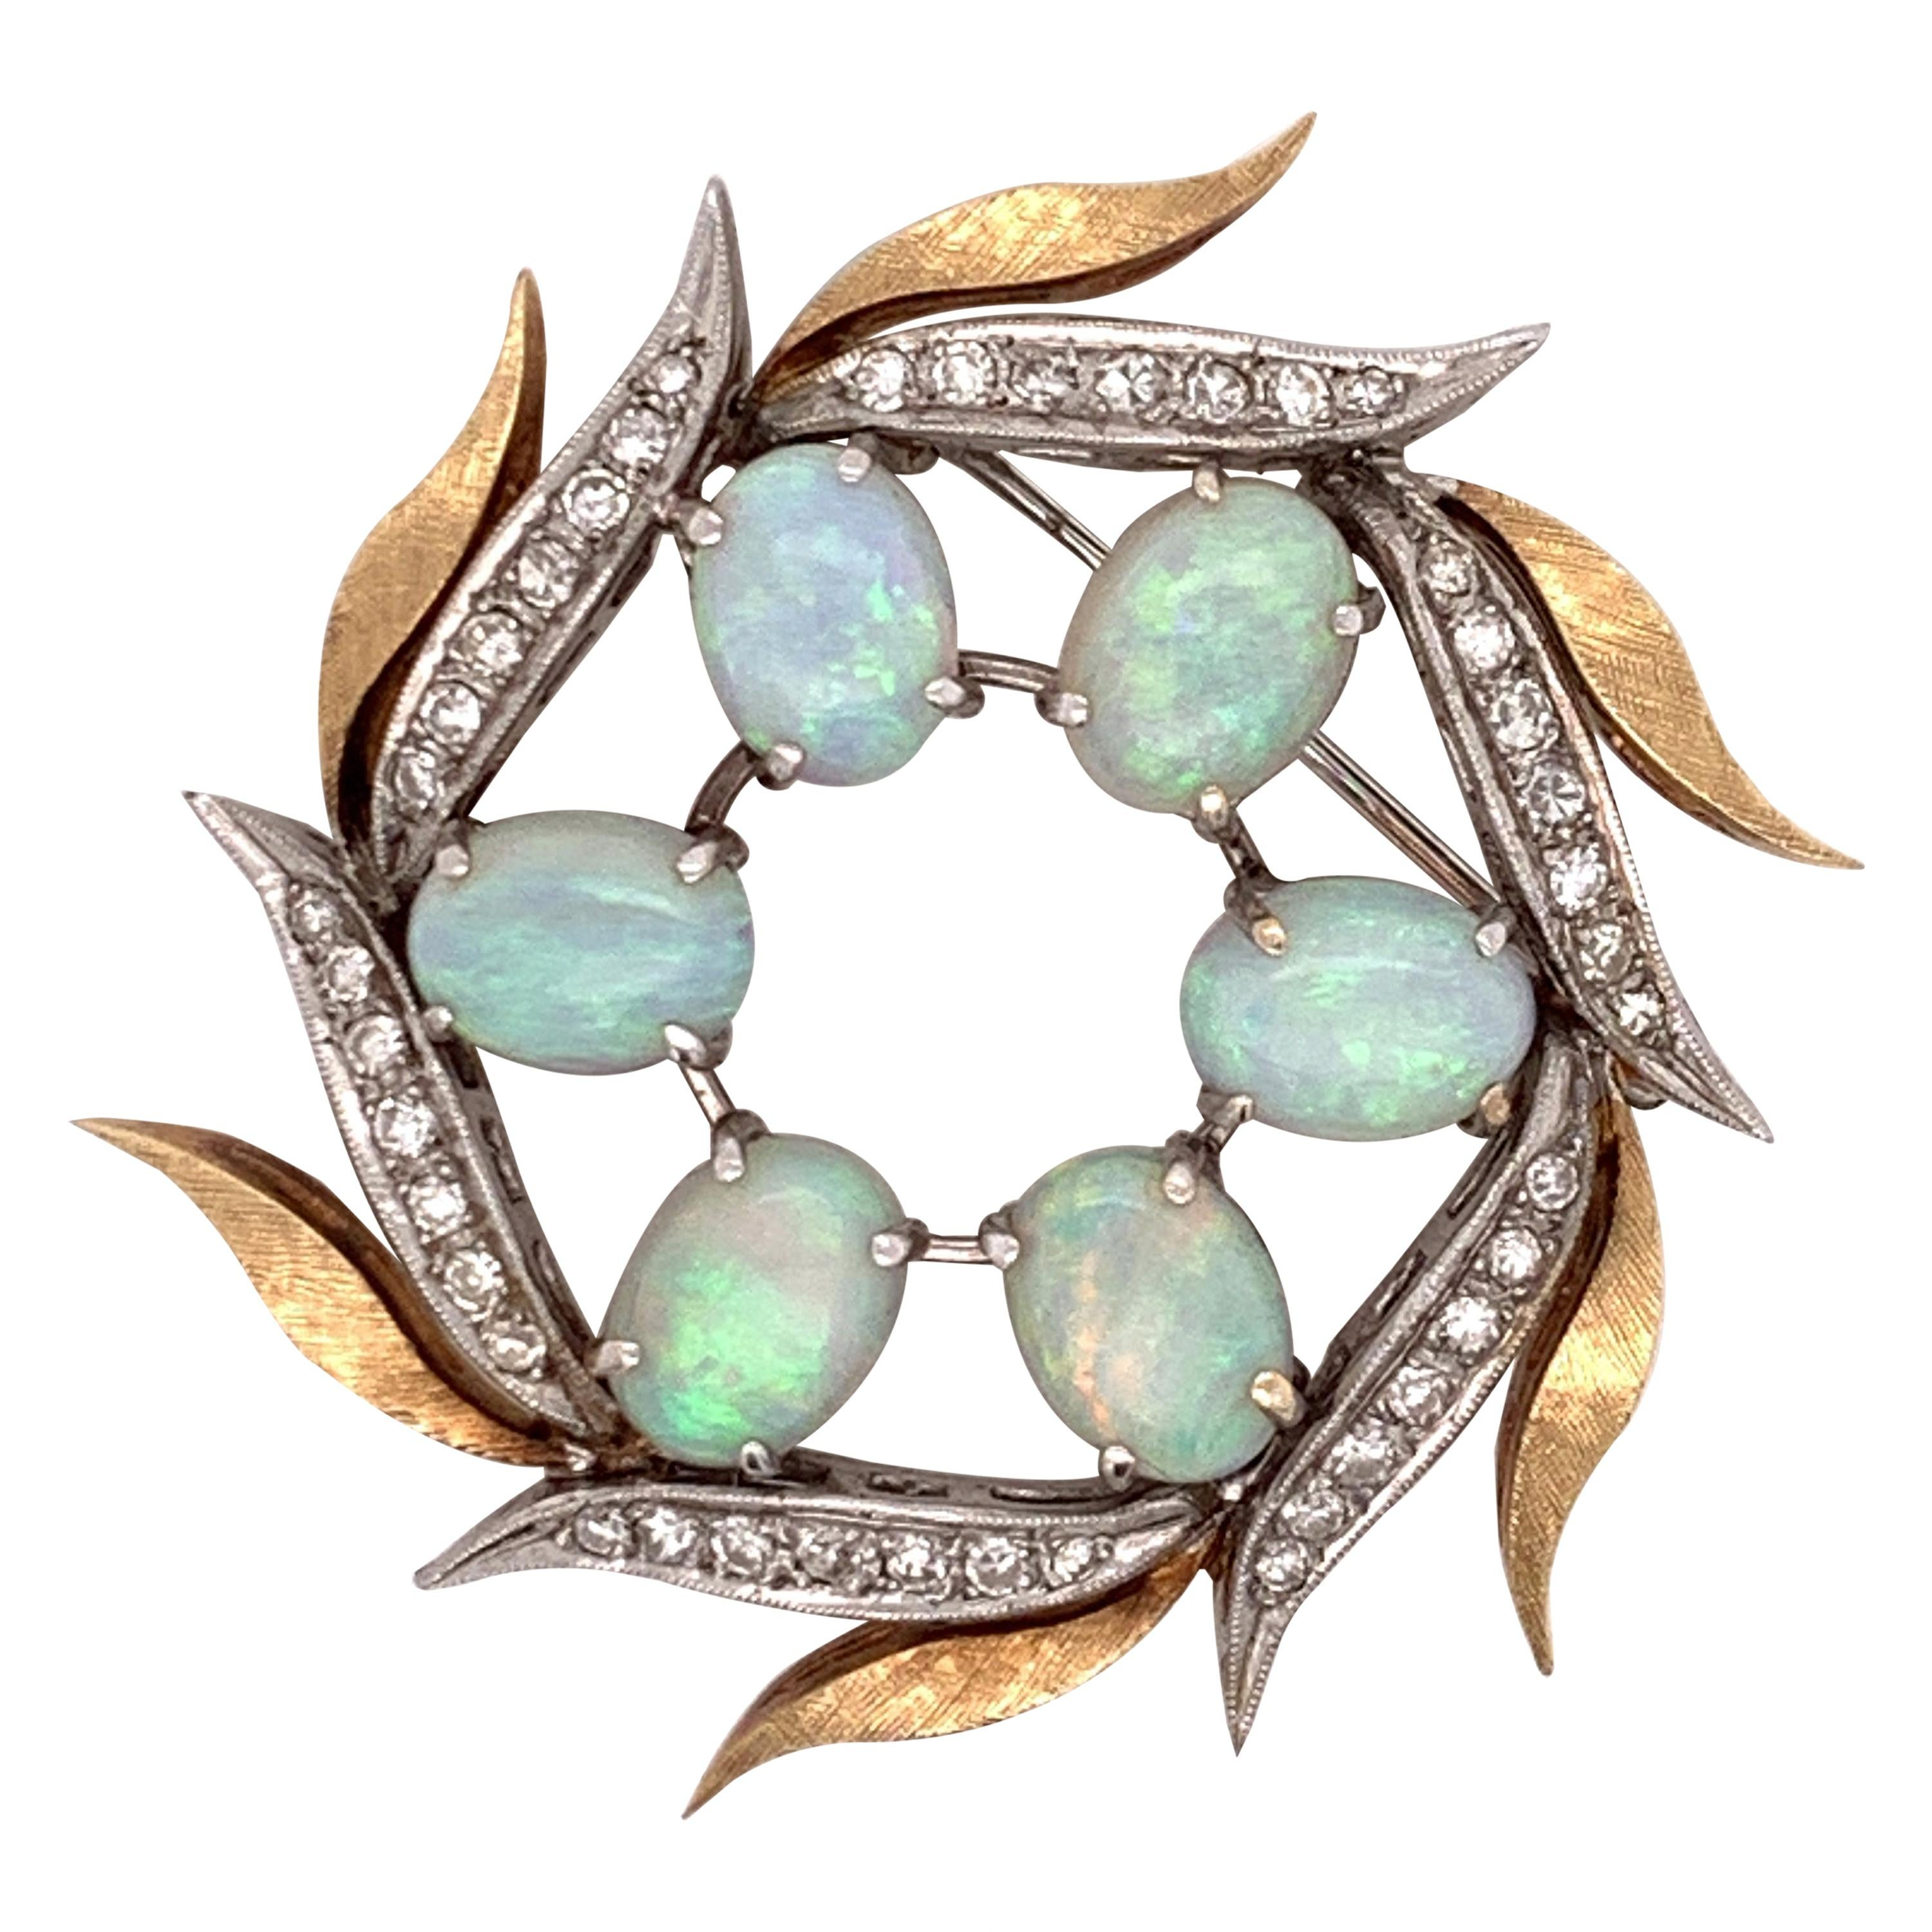 Opal Wreath Brooch with 0.5 Carat Diamonds Set in 14 Karat Yellow and White Gold